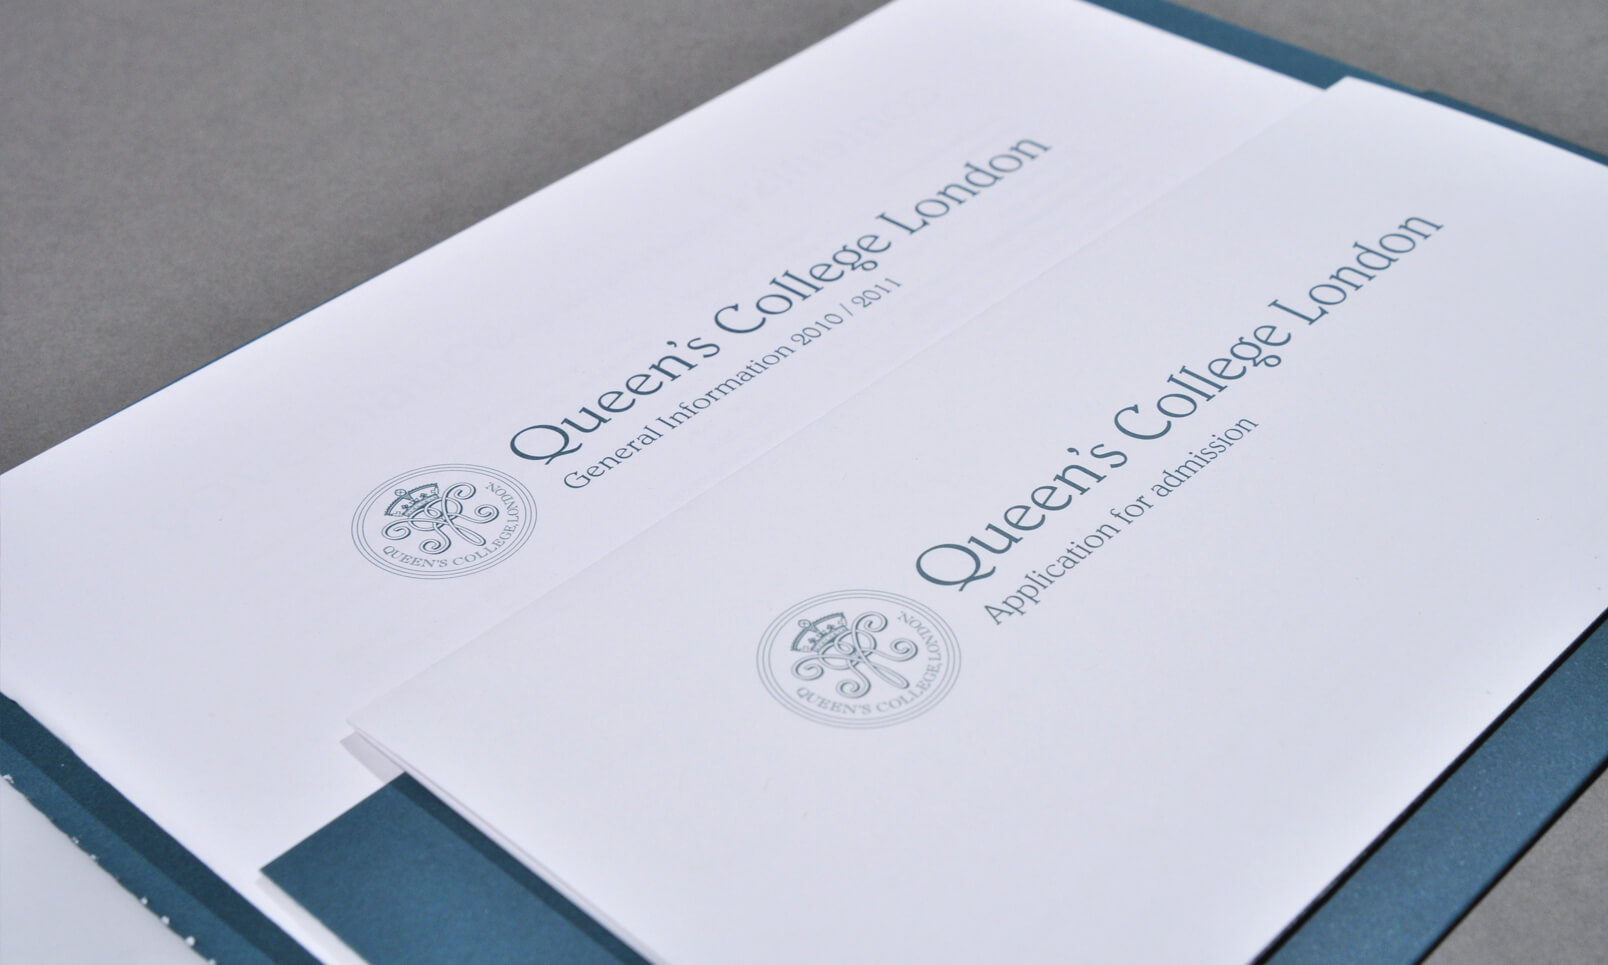 Queen's College Prospectus